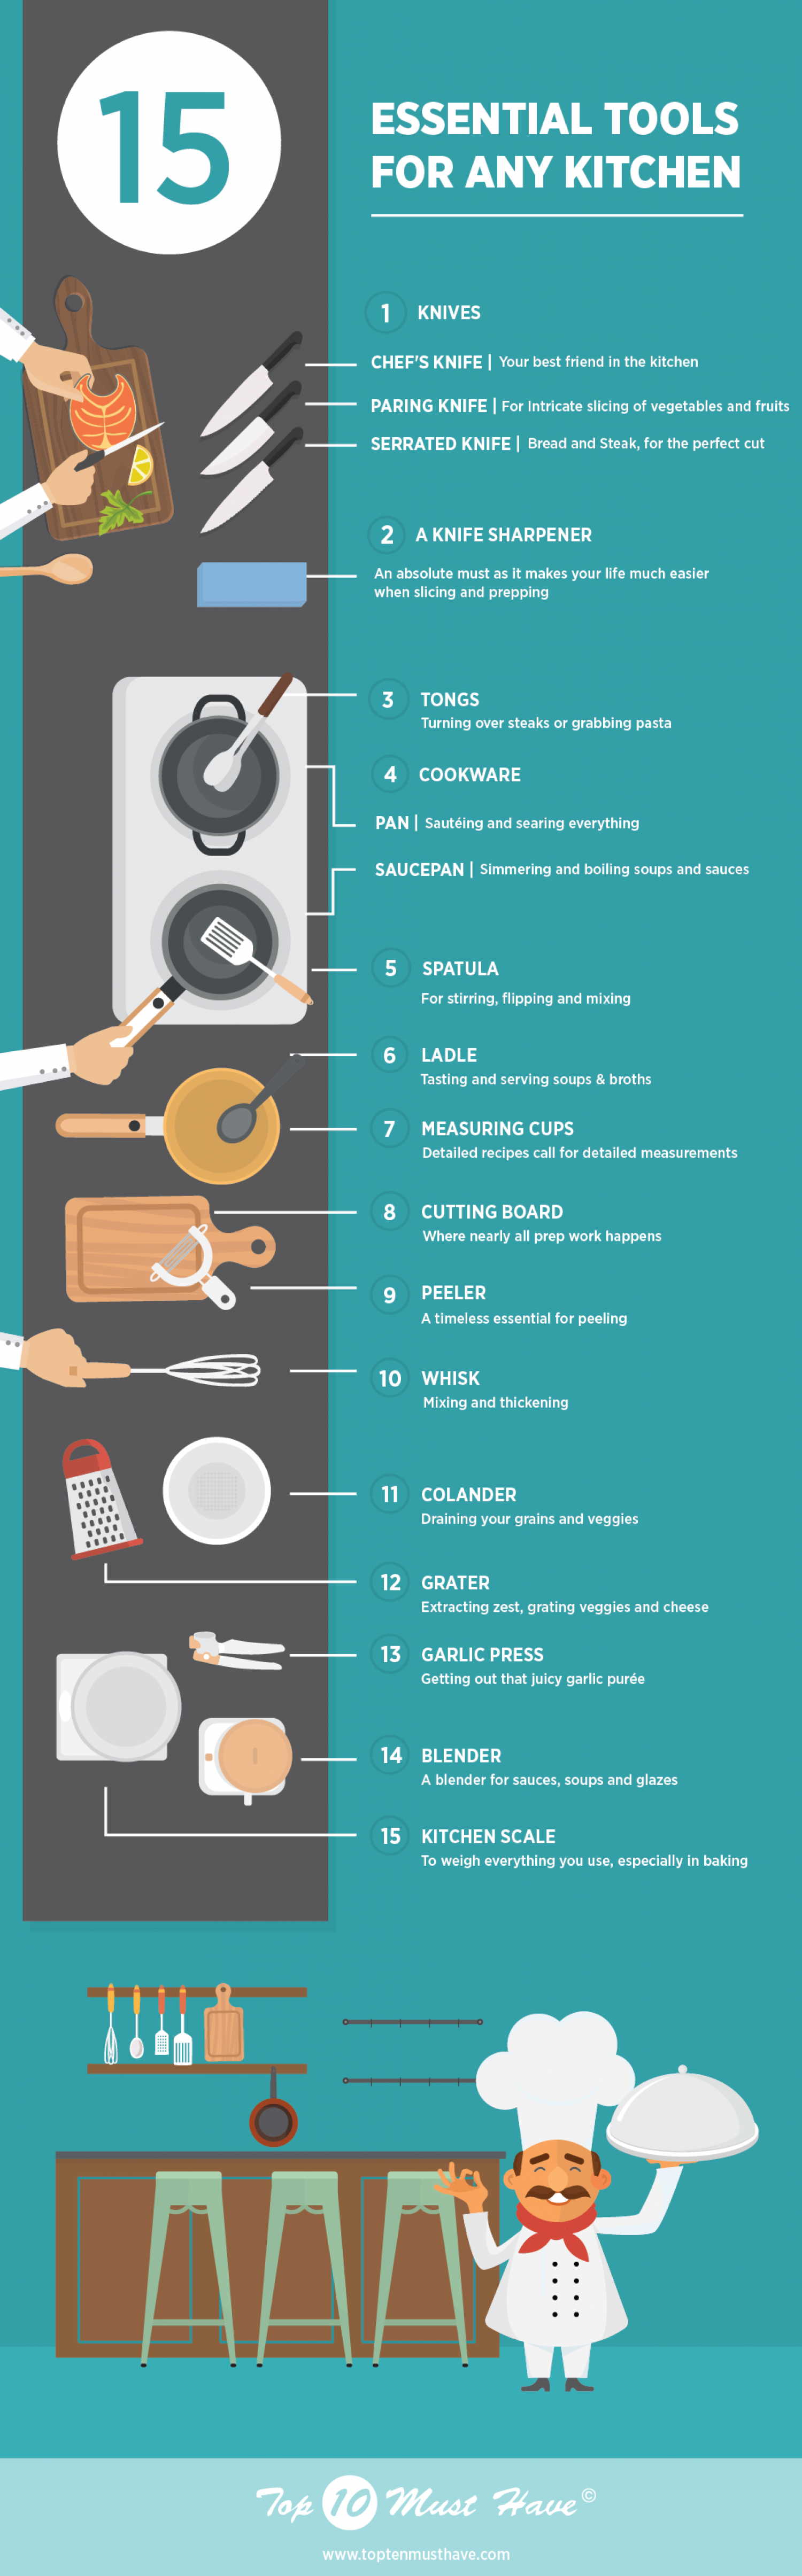 15 Essential Kitchen Tools For Any Kitchen Infographic